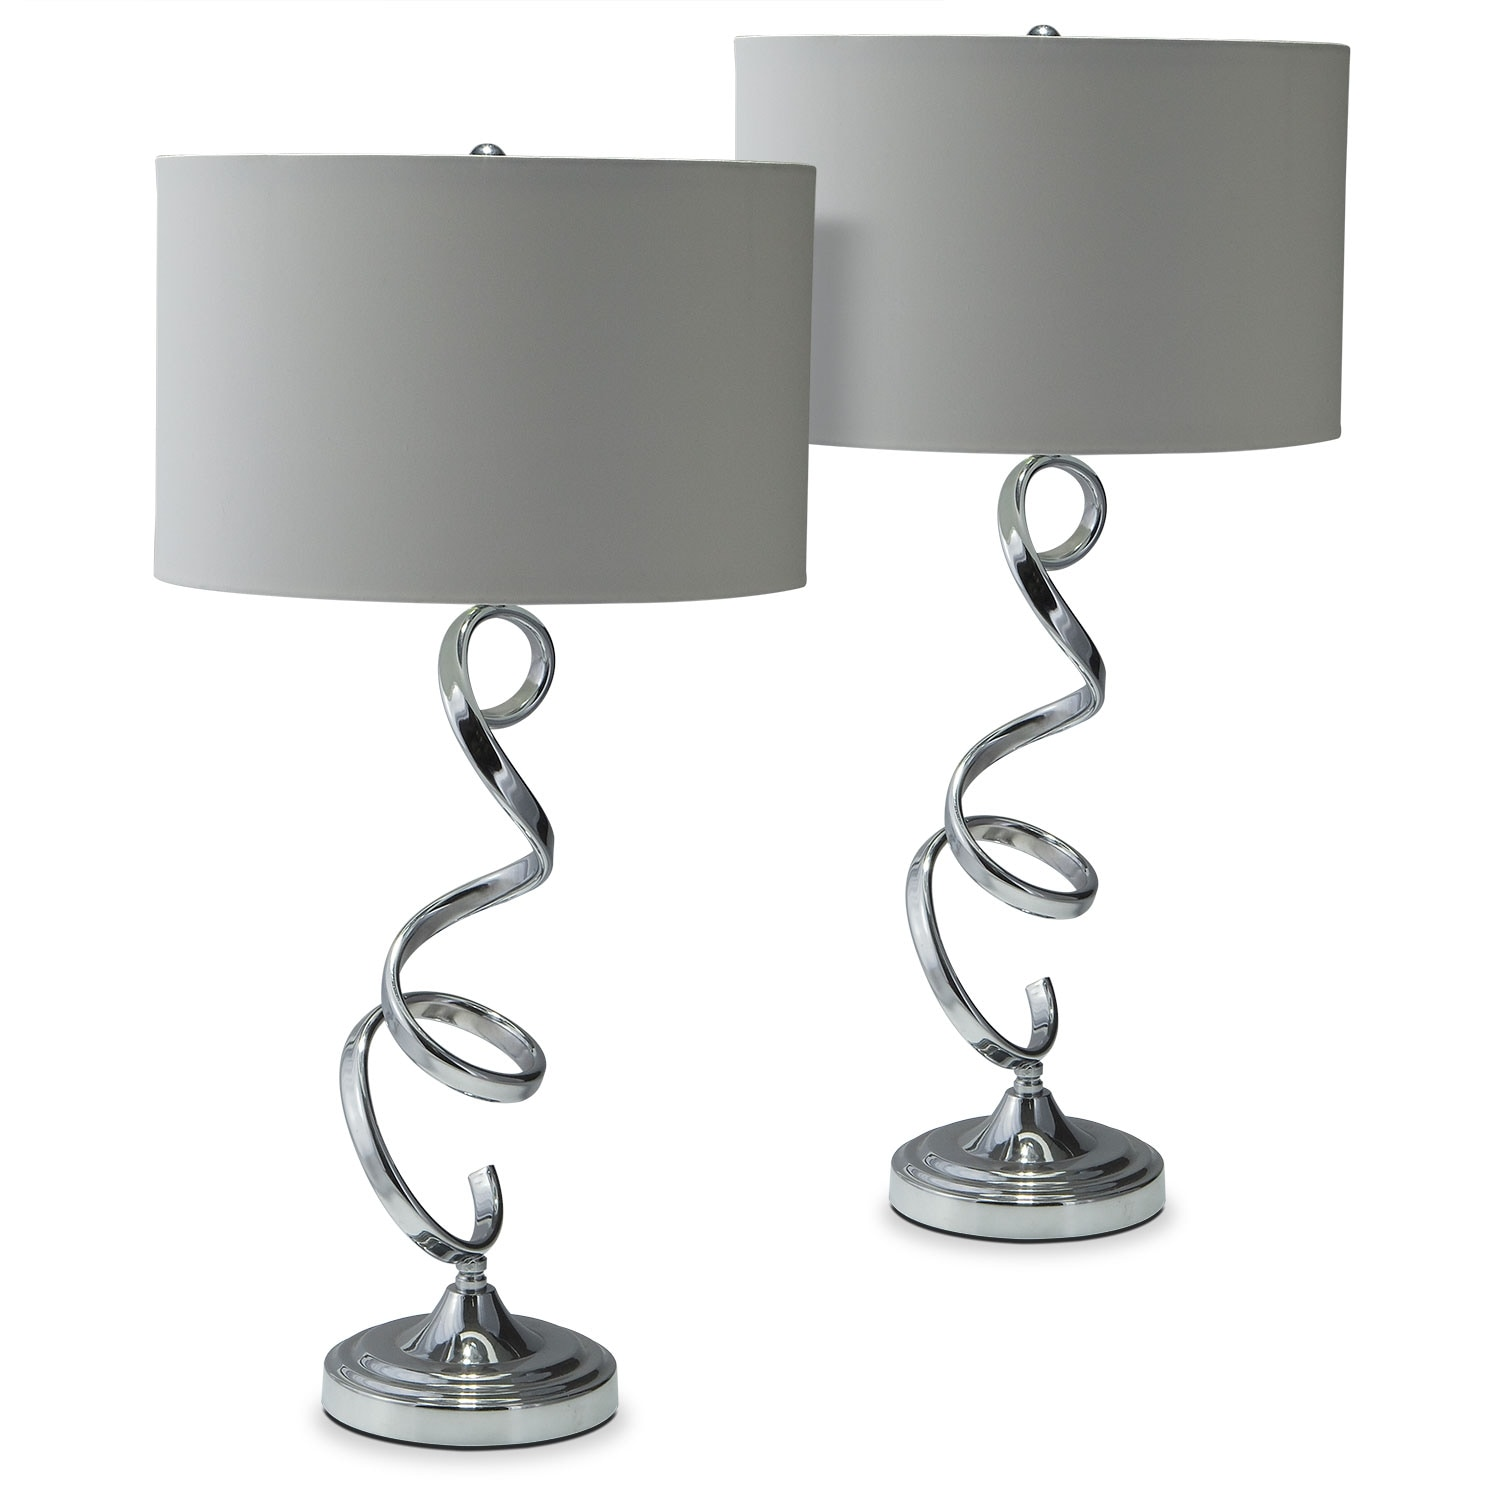 Nickel Swirl 2-Pack Table Lamp Set